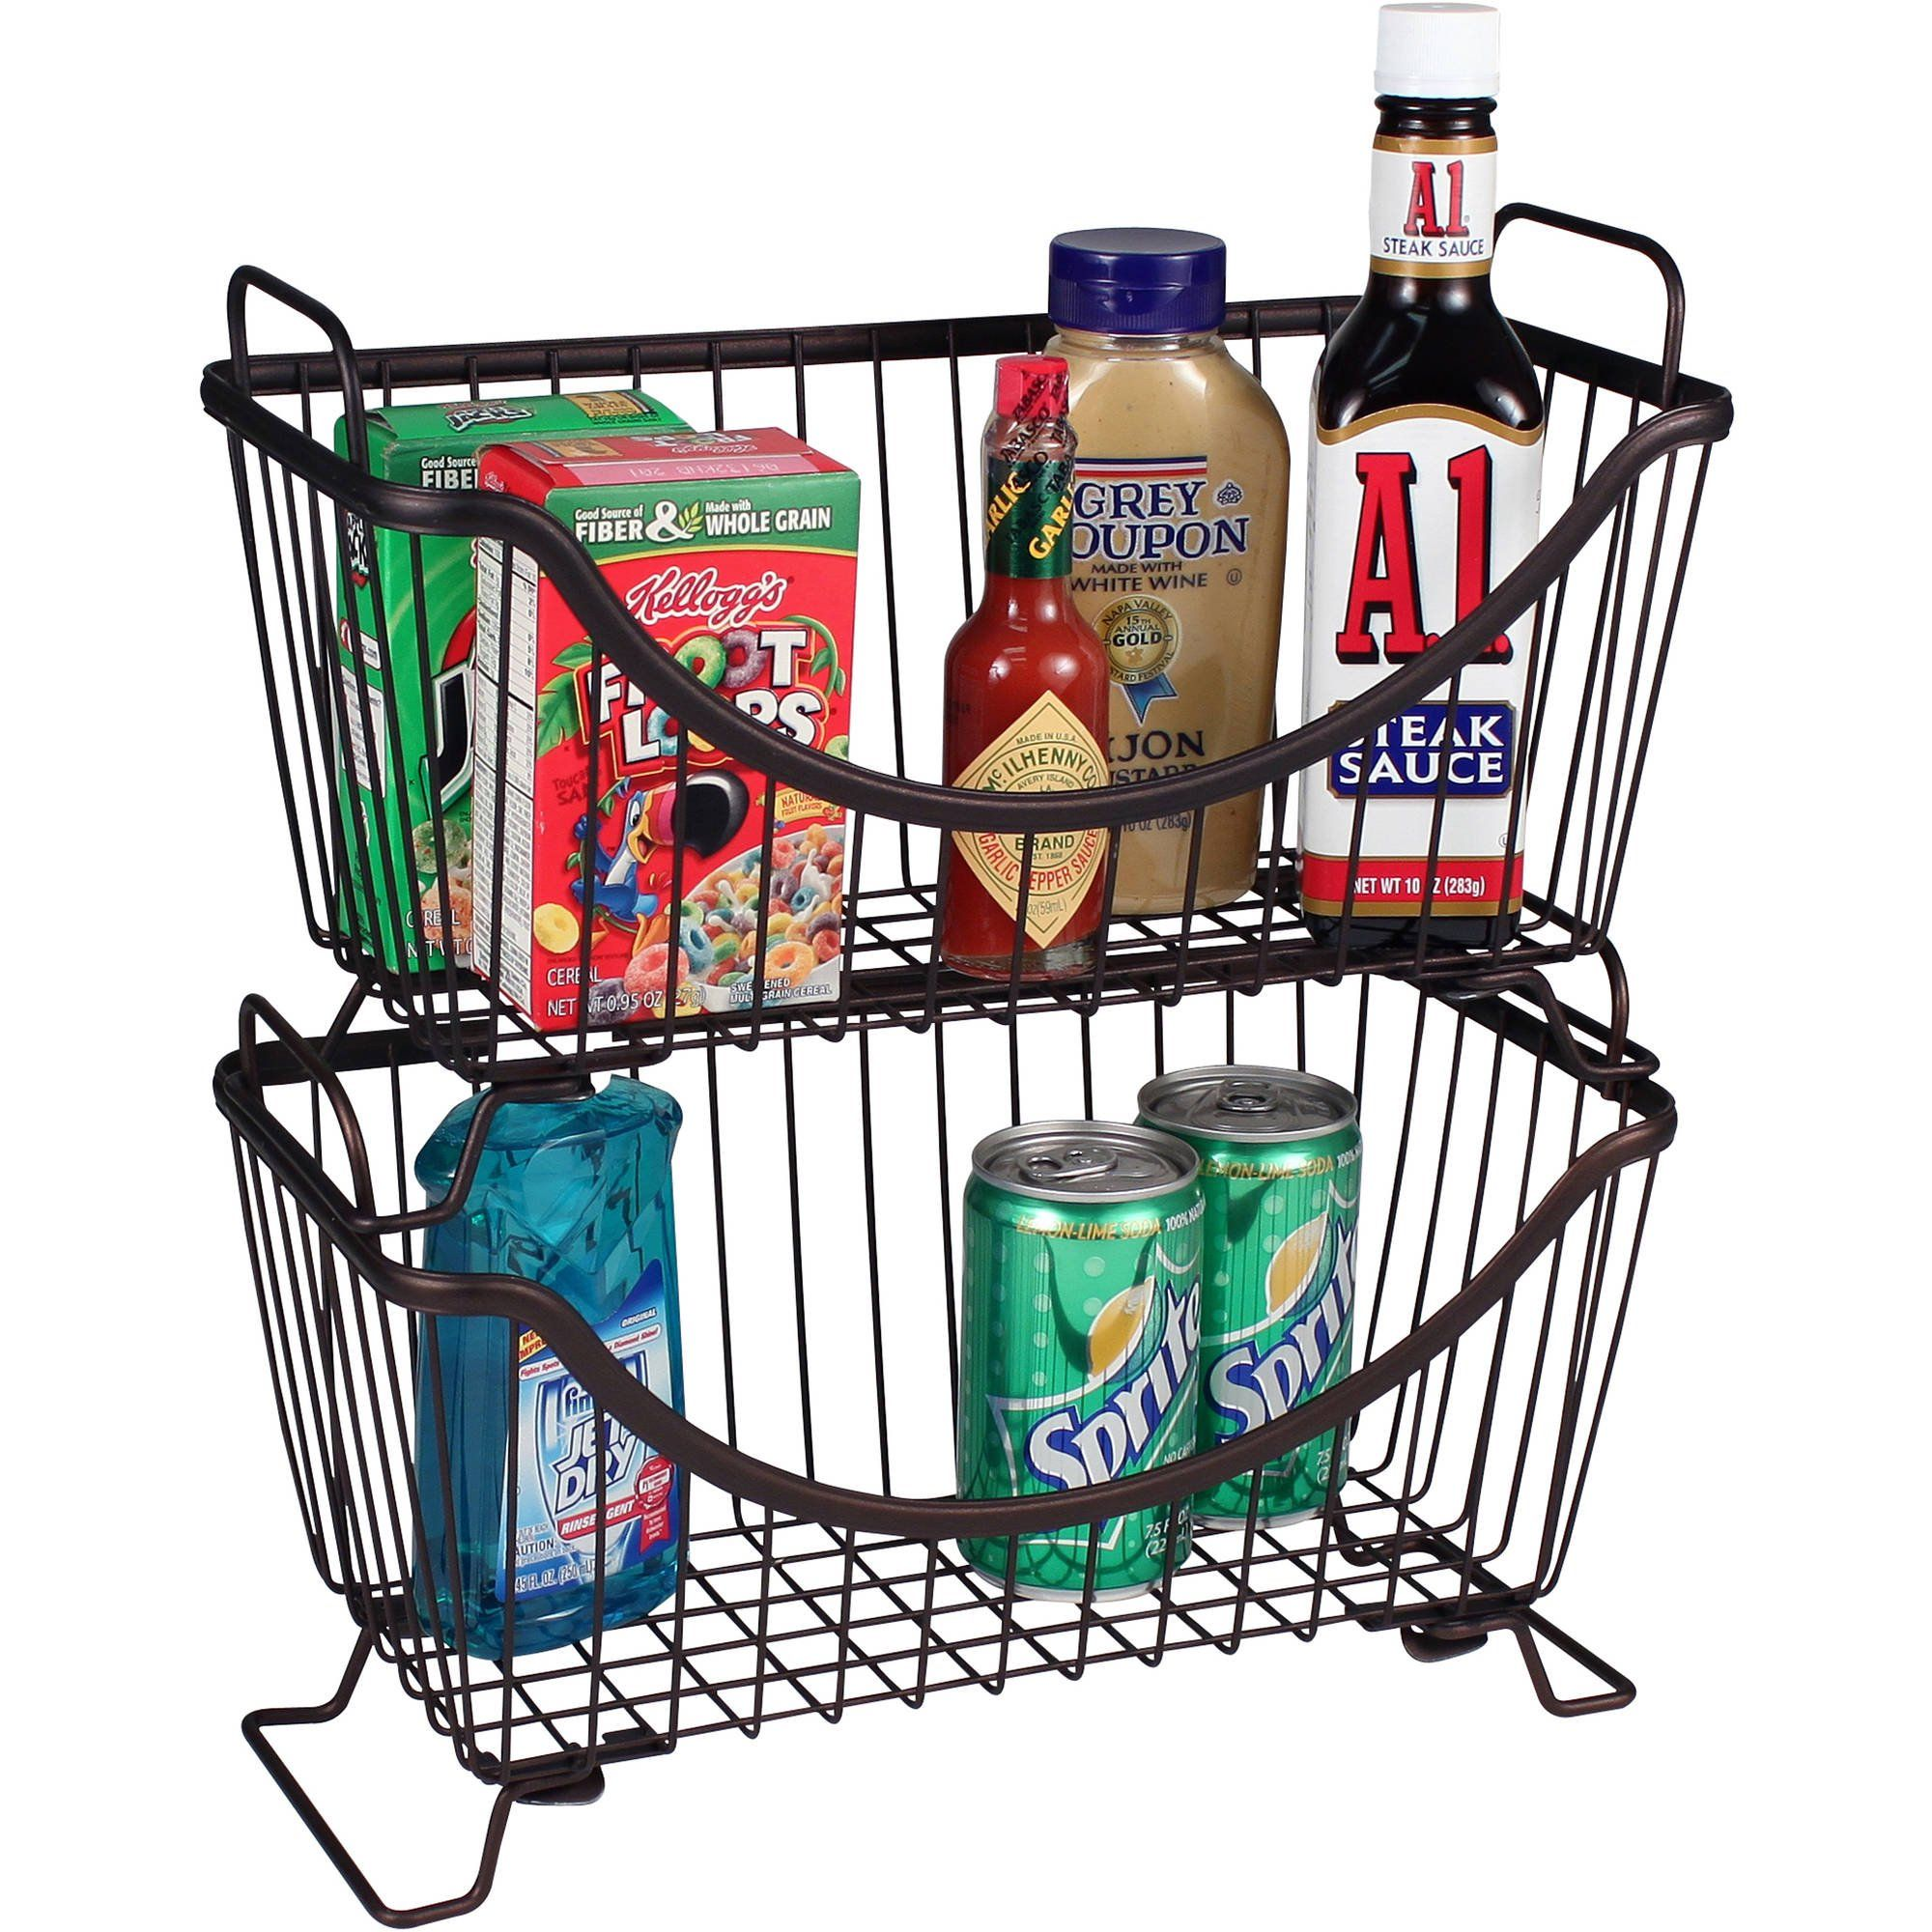 Spectrum Diversified Ashley Stackable Wire Basket With Raised Feet And Looped Handles Modular Stacking Bin System For Kitchen Countertop Desk Organization S Stackable Baskets Stacking Bins Spectrum Diversified